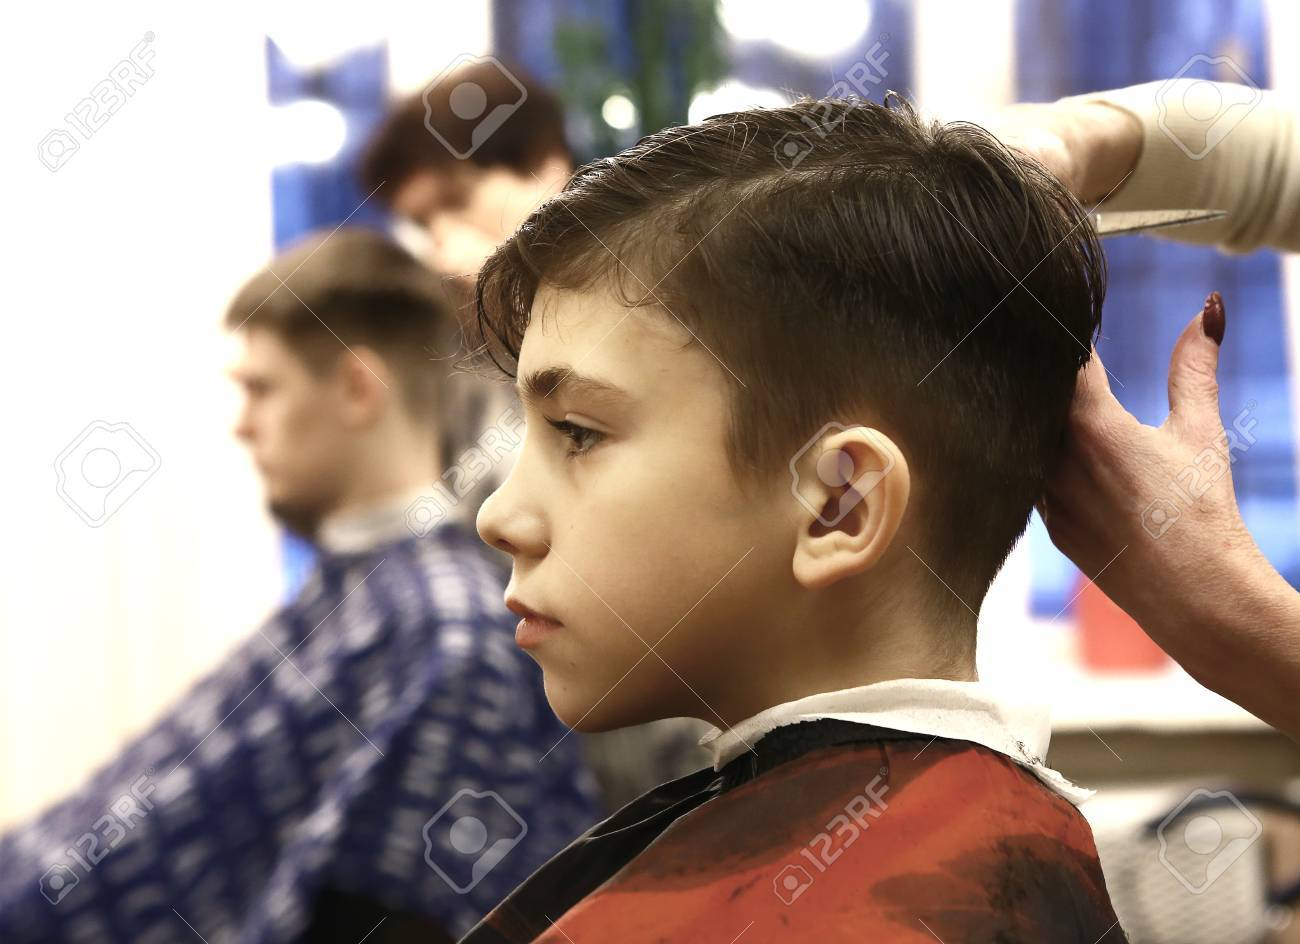 Barber shop for men. Moscow 6